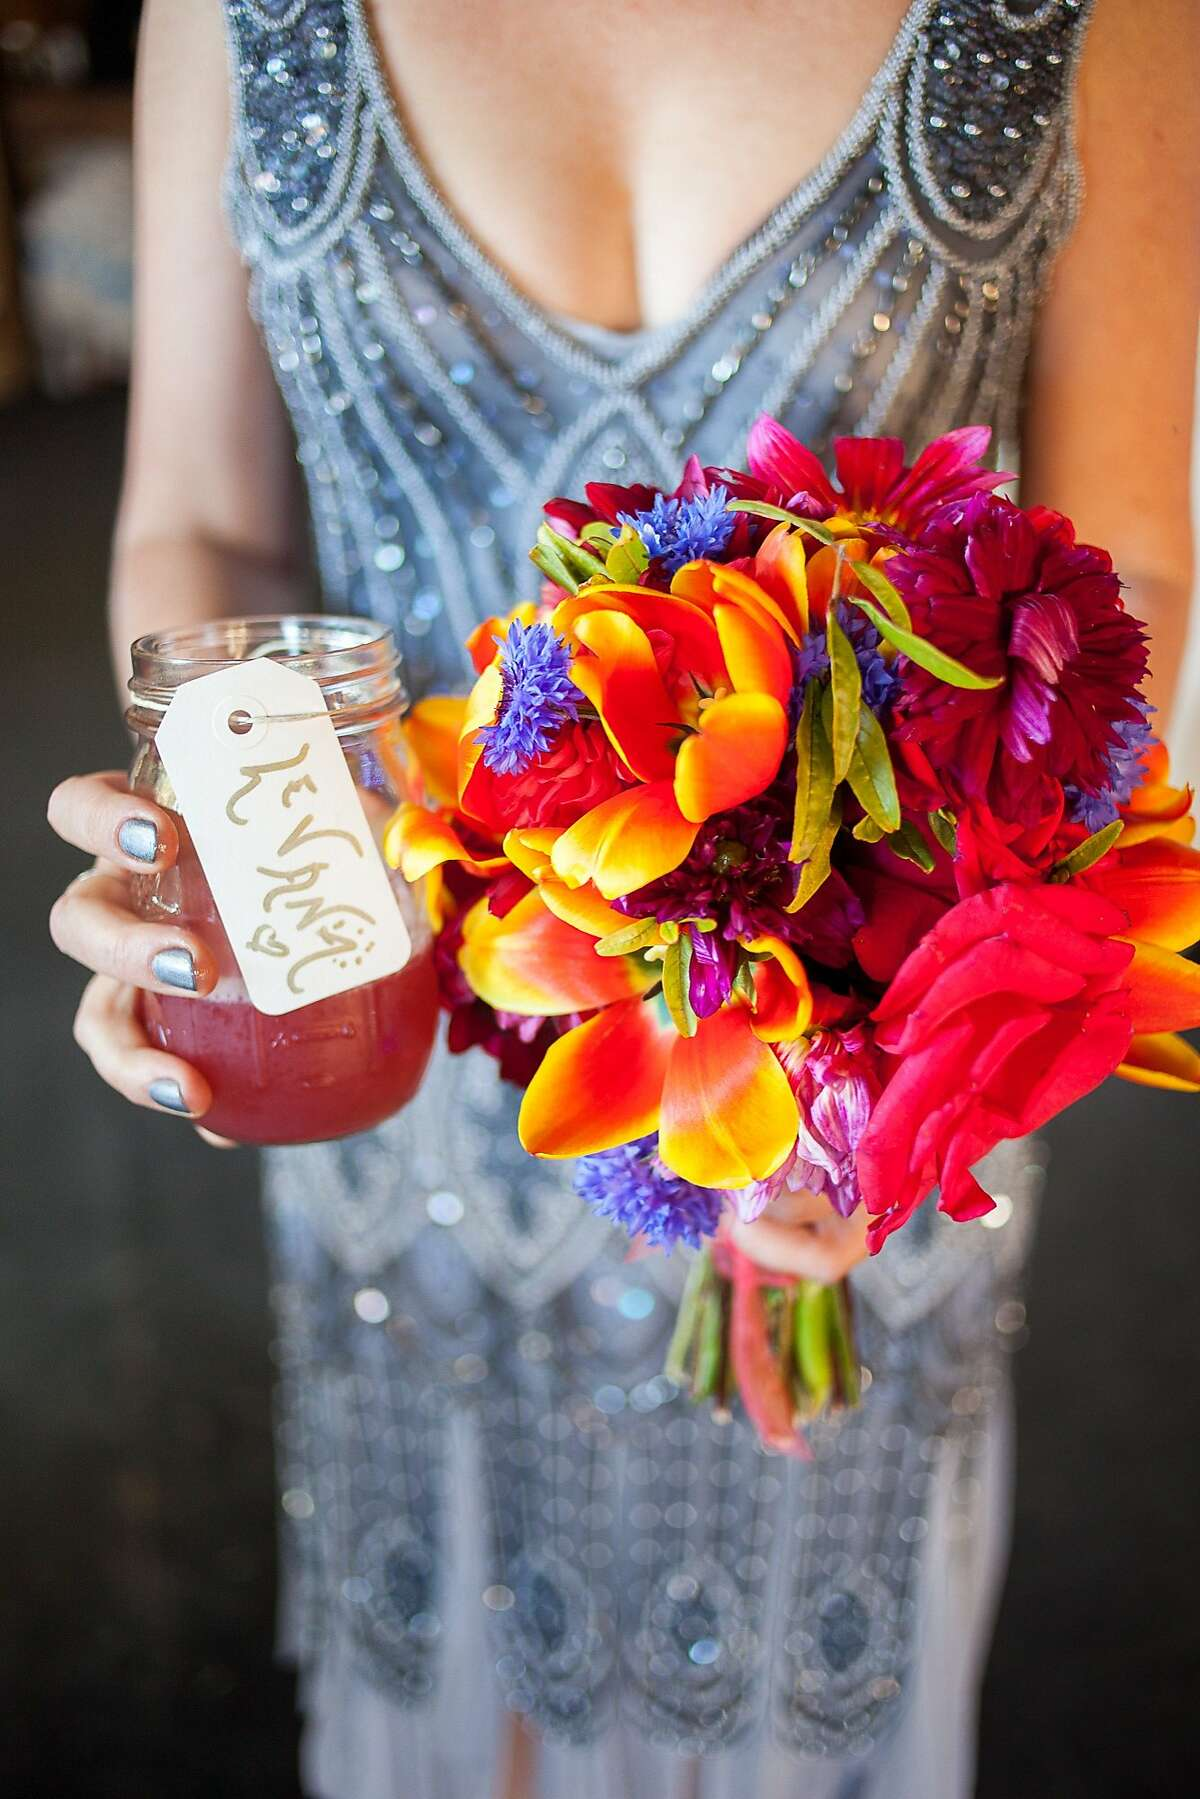 San Francisco couple Levana Saxon and Casey Harrell married Sept. 28 on a private piece of land in Sebastopol. The local and pesticide-free flowers were arranged by her friends.